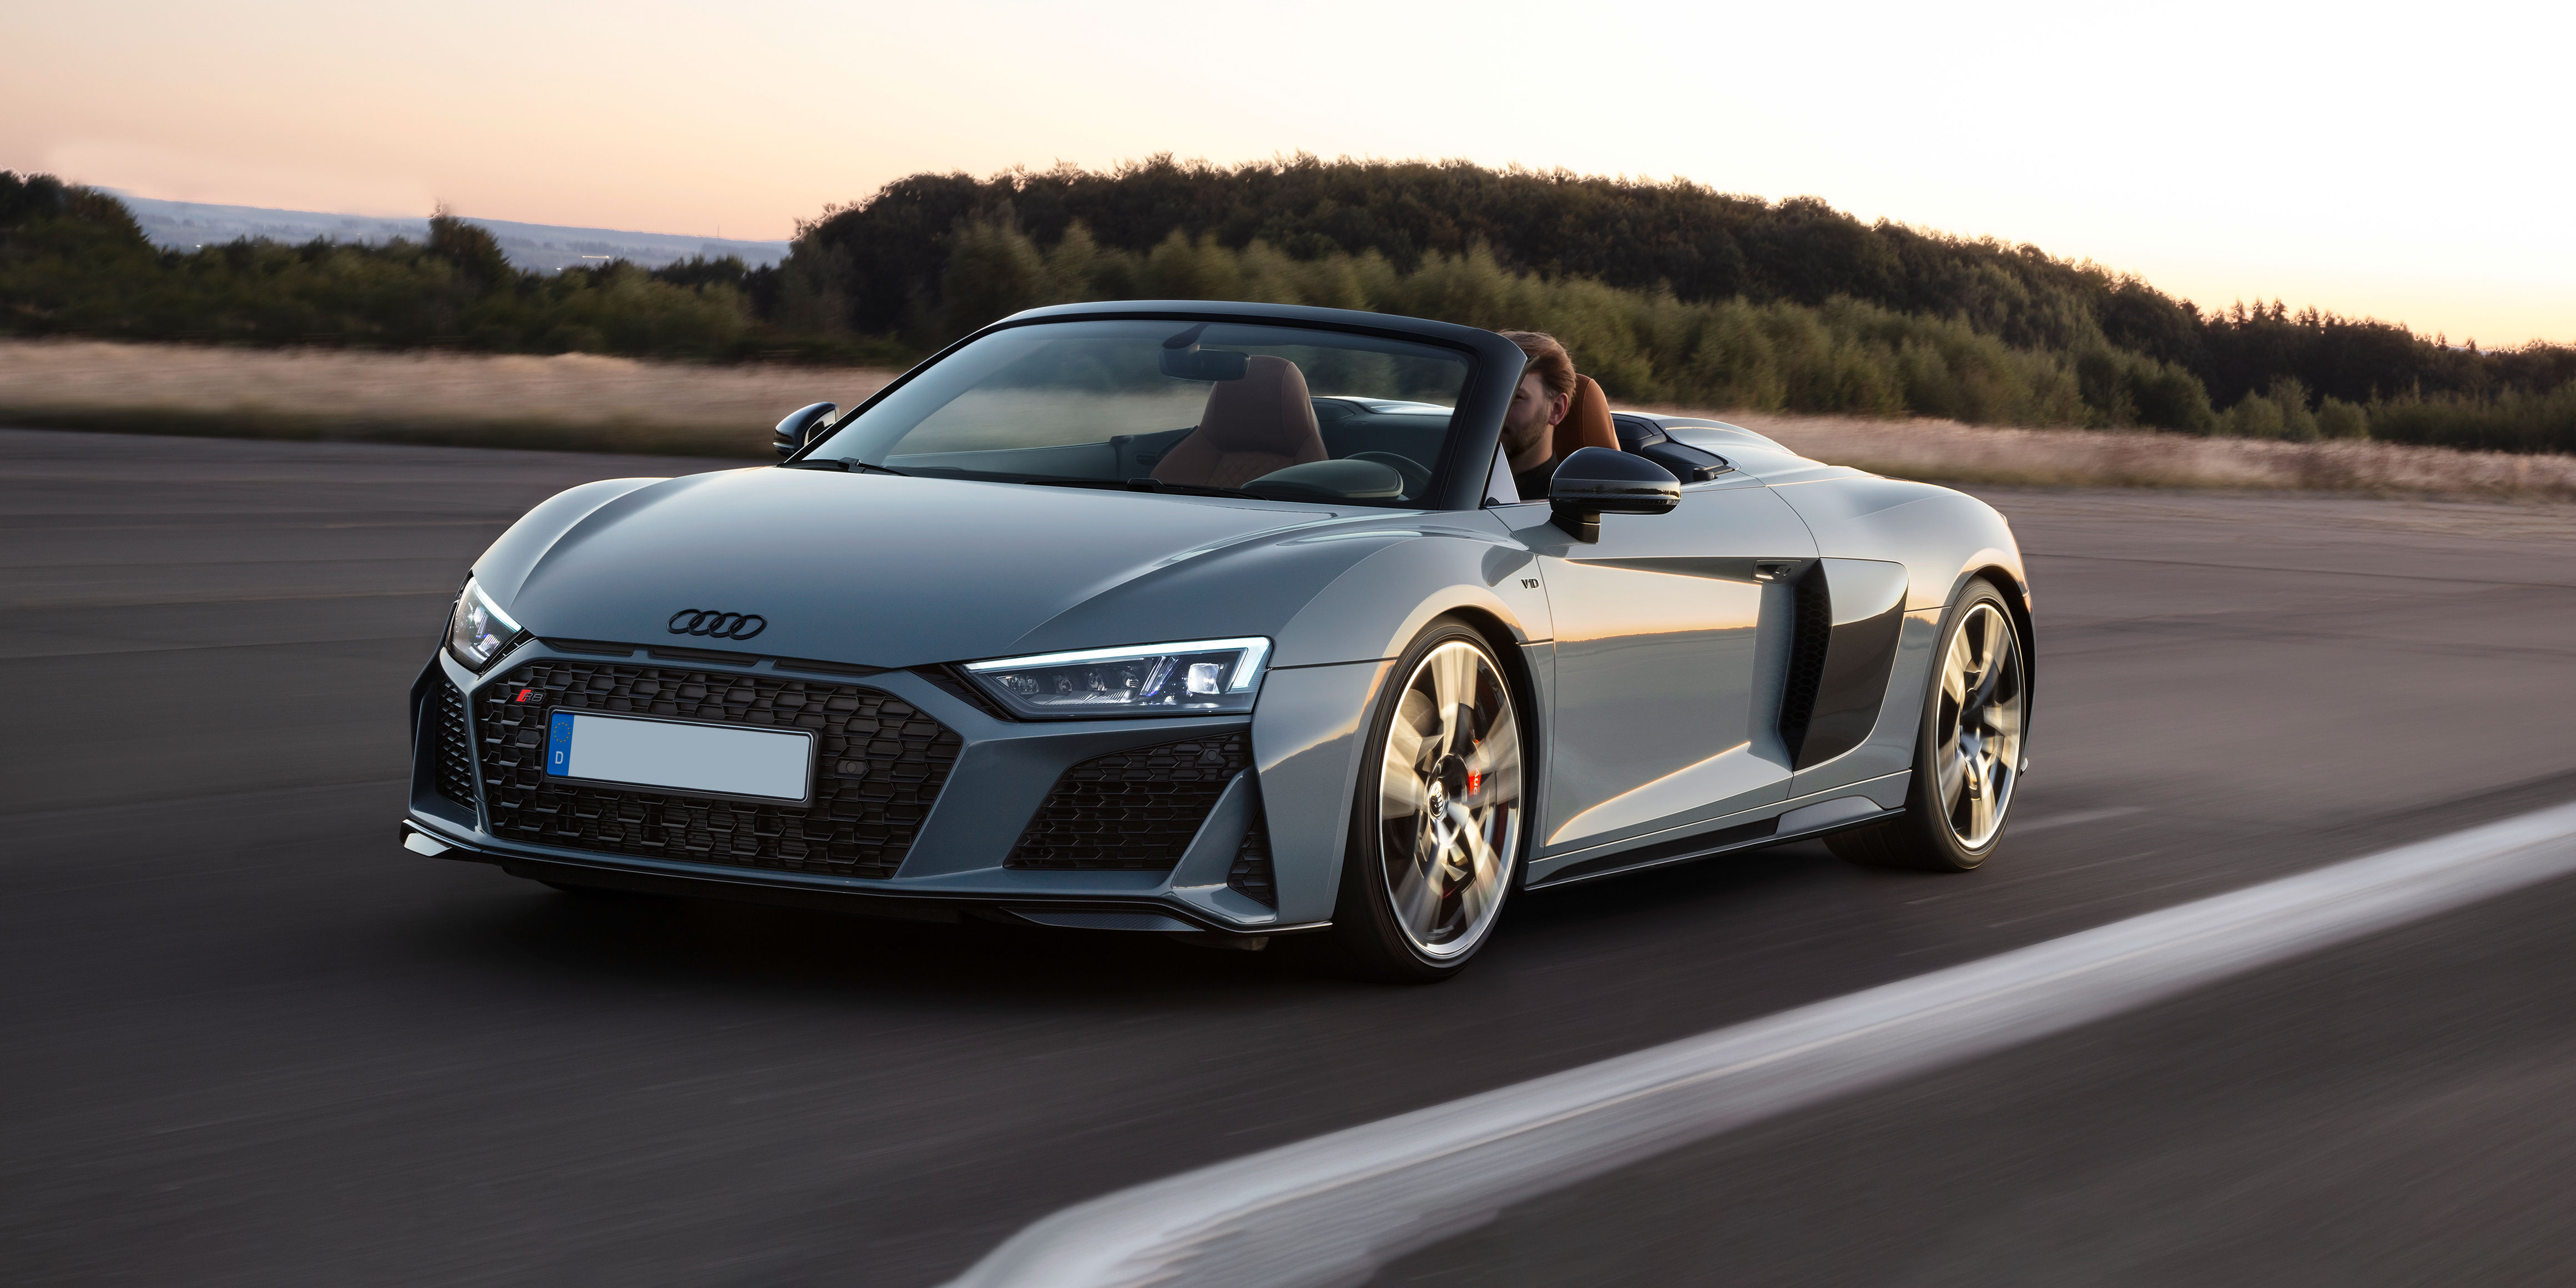 Audi R8 Spyder Specifications Prices Carwow